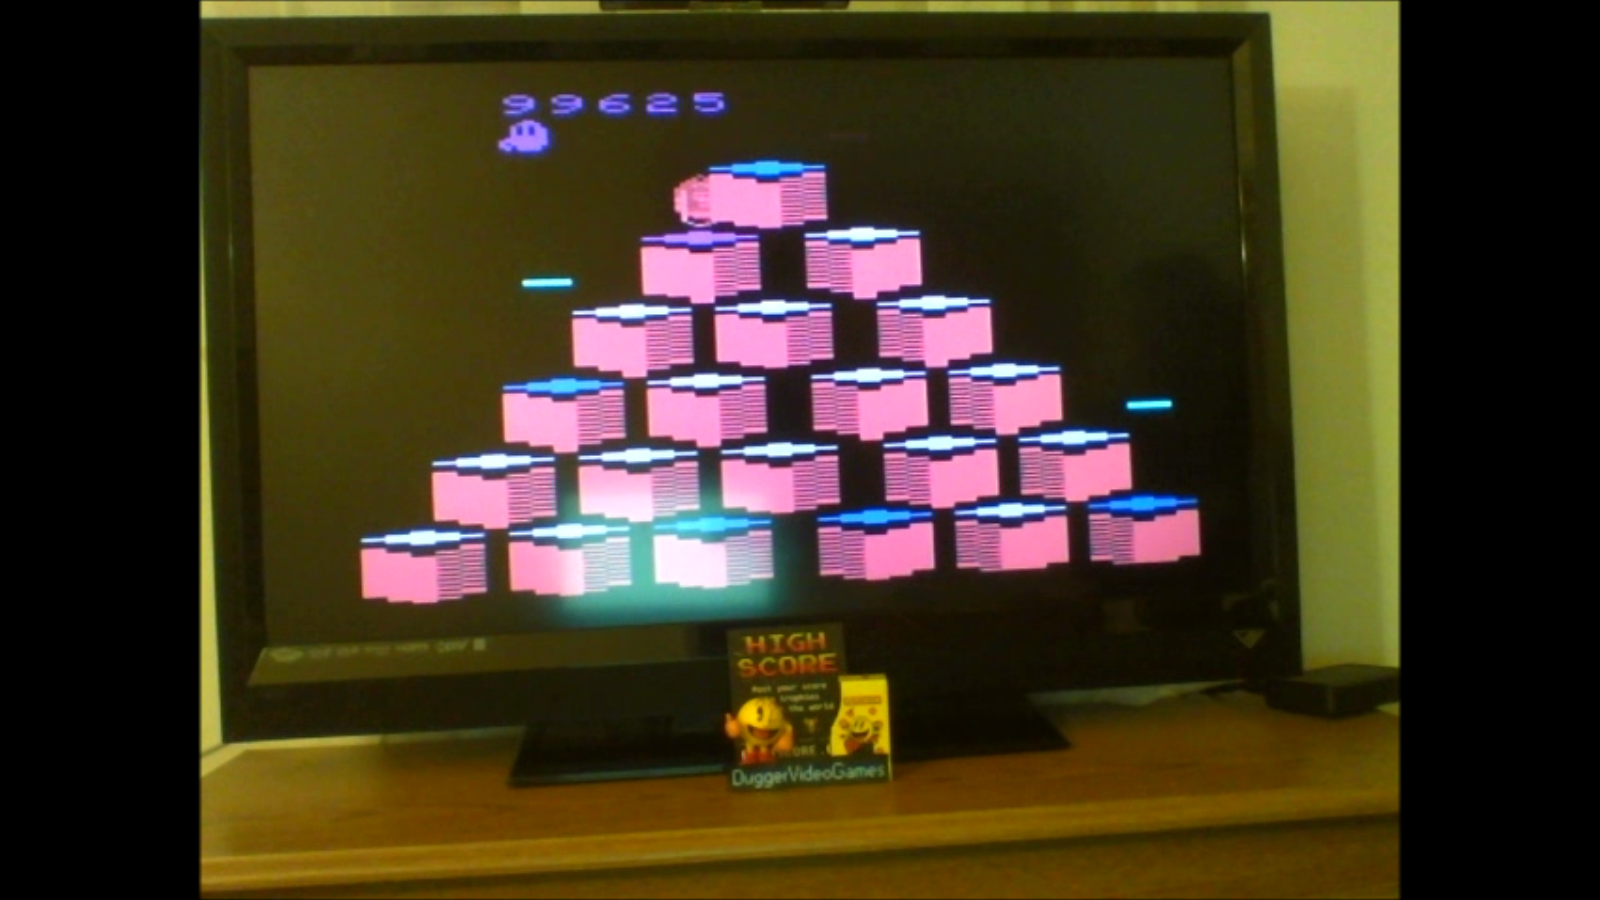 DuggerVideoGames: Q*bert (Atari 2600 Emulated Novice/B Mode) 101,650 points on 2017-01-17 02:11:39